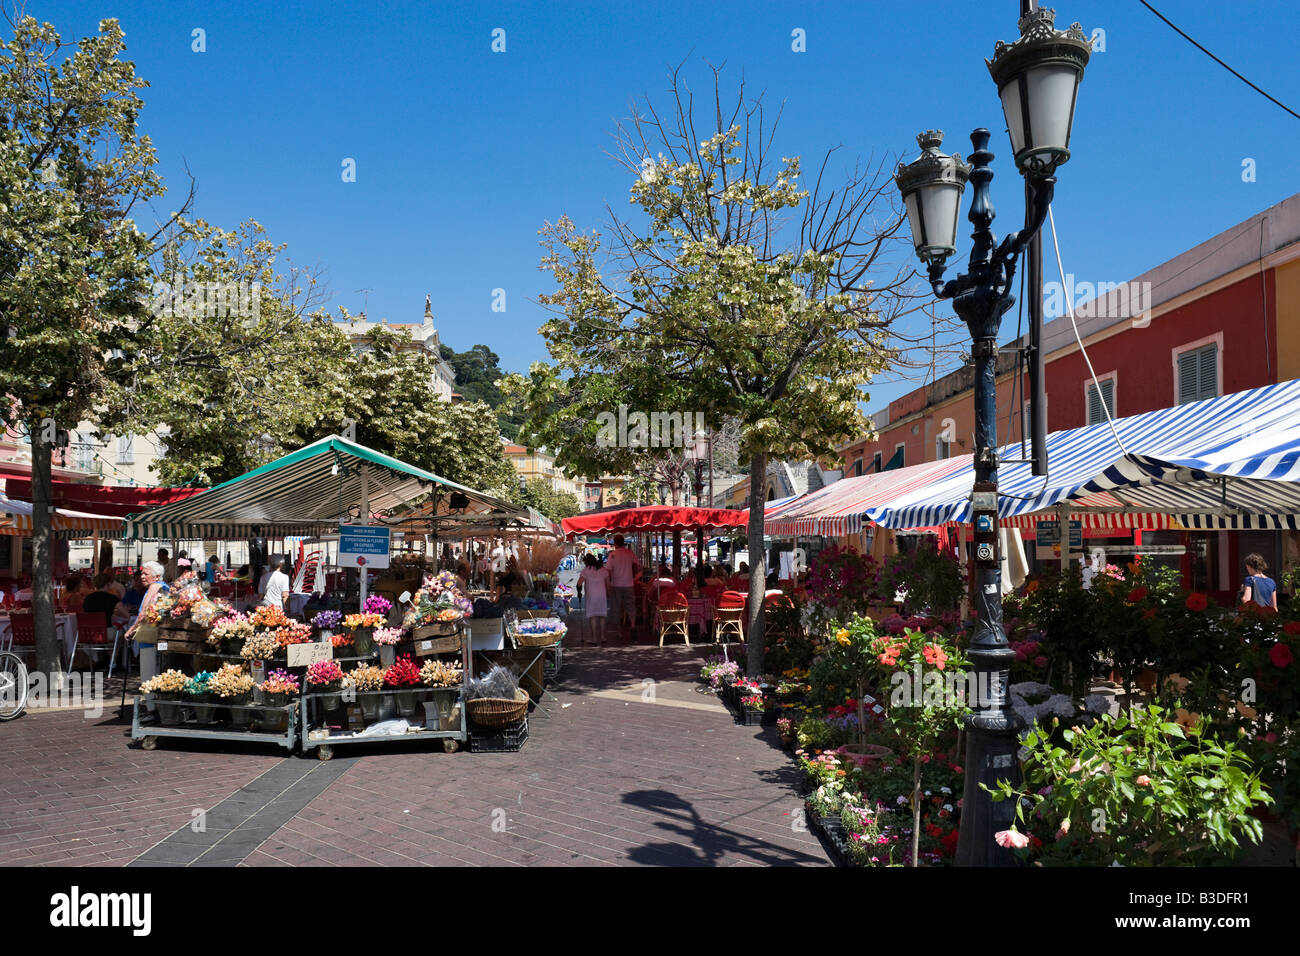 Flower stalls in the Marche aux Fleurs, Cours Saleya in the old town (Vieux Nice), Nice, Cote d'Azur, French - Stock Image